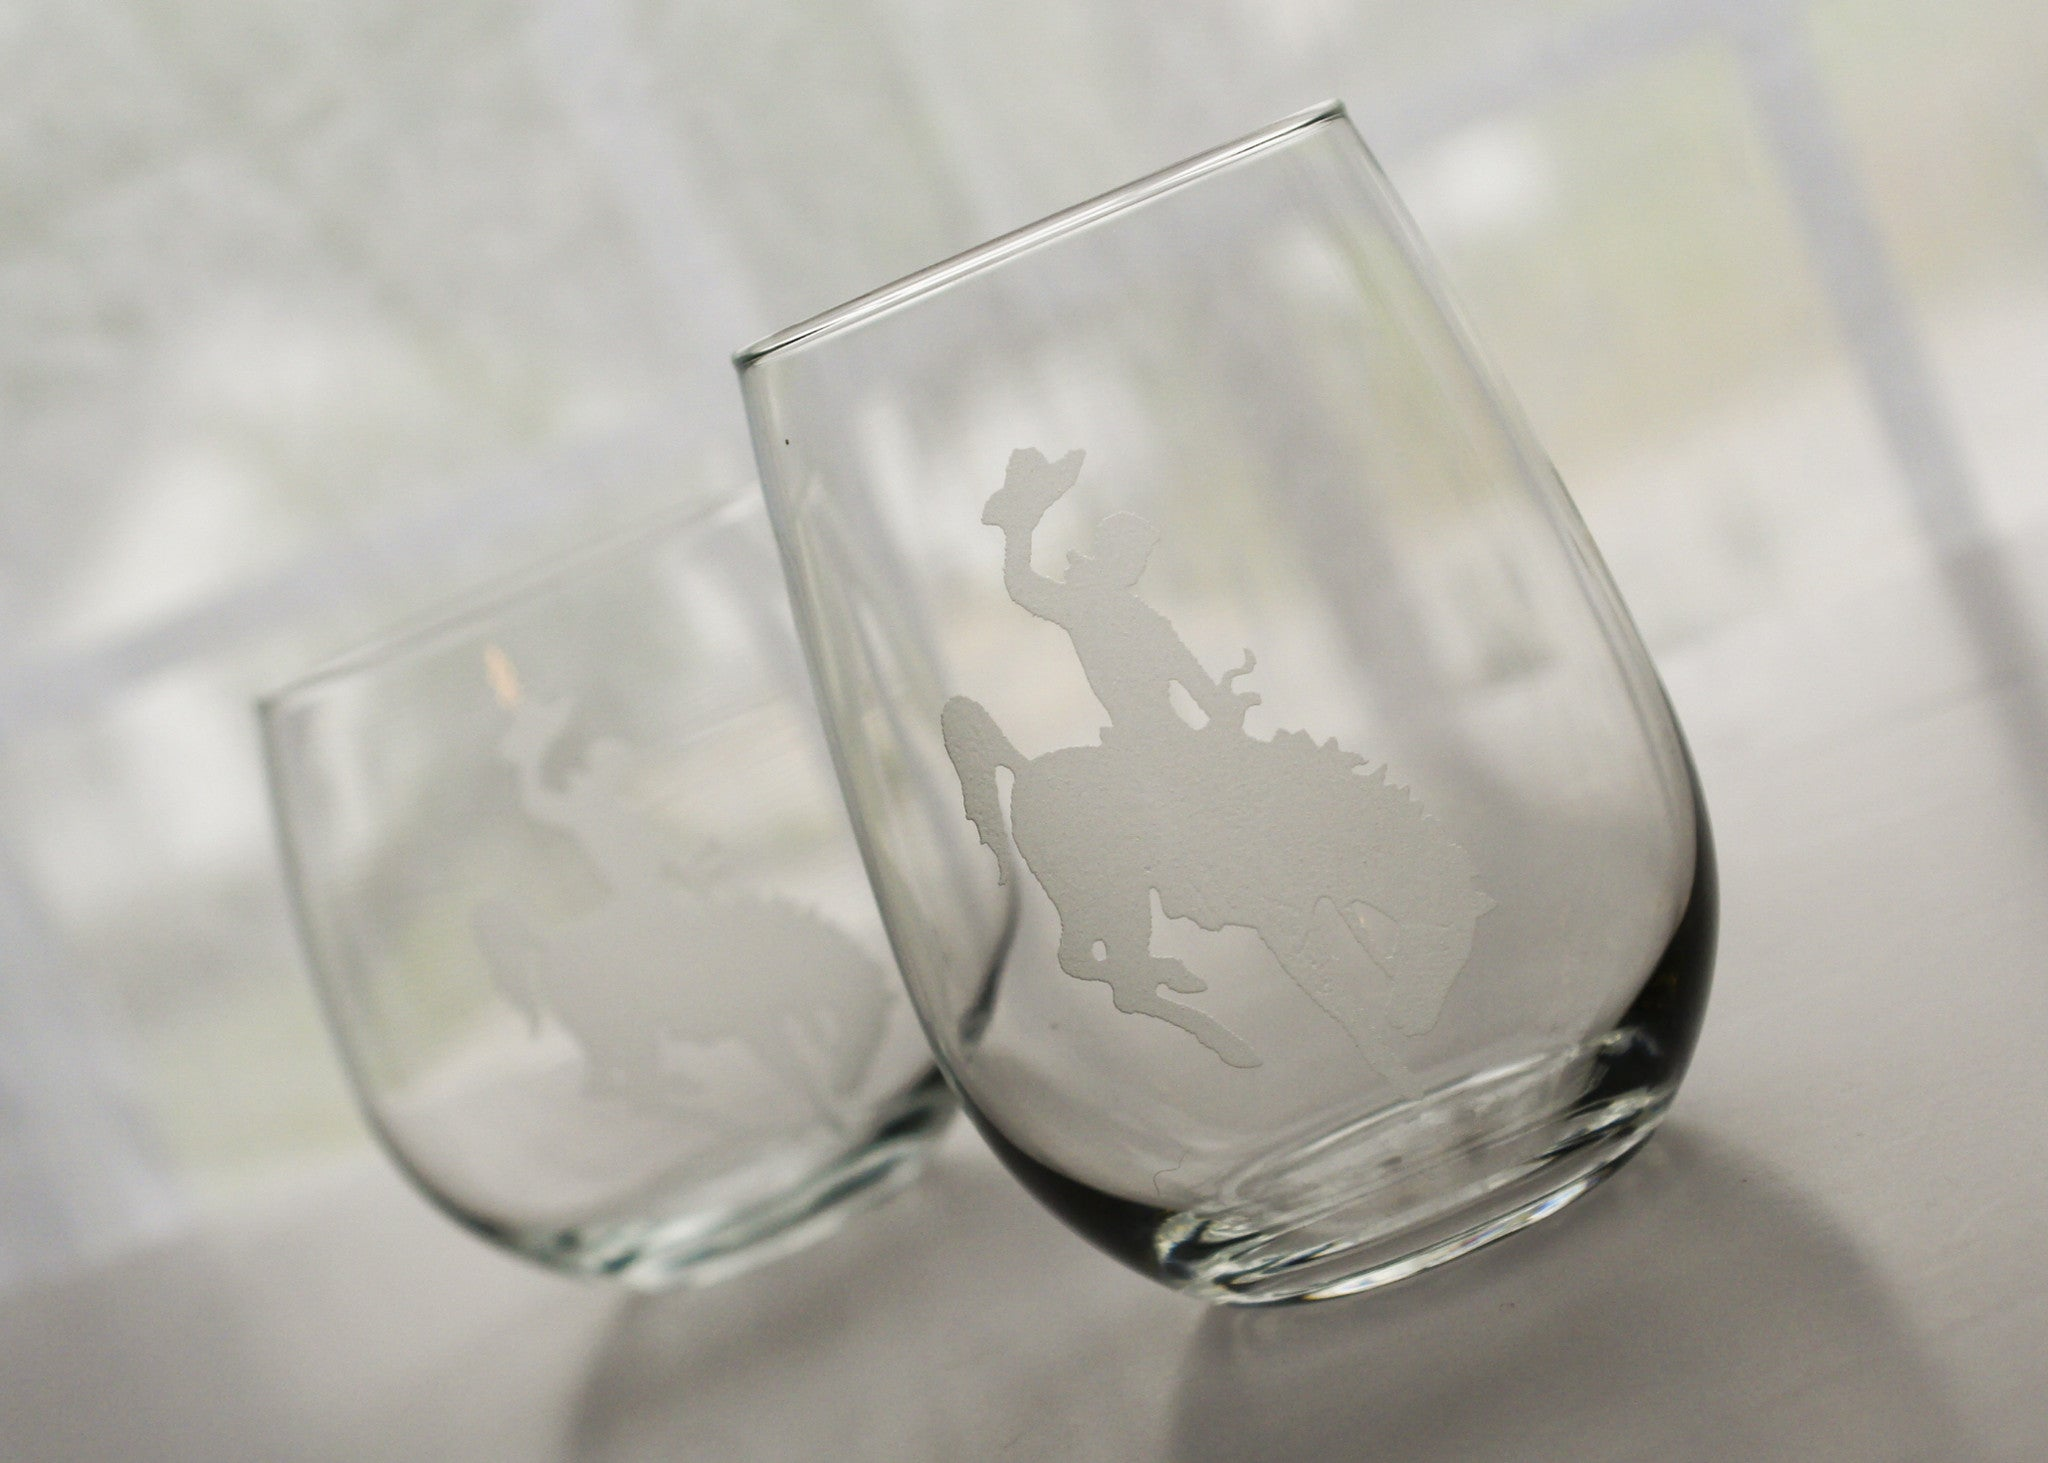 etched wine glass - Etched Wine Glasses